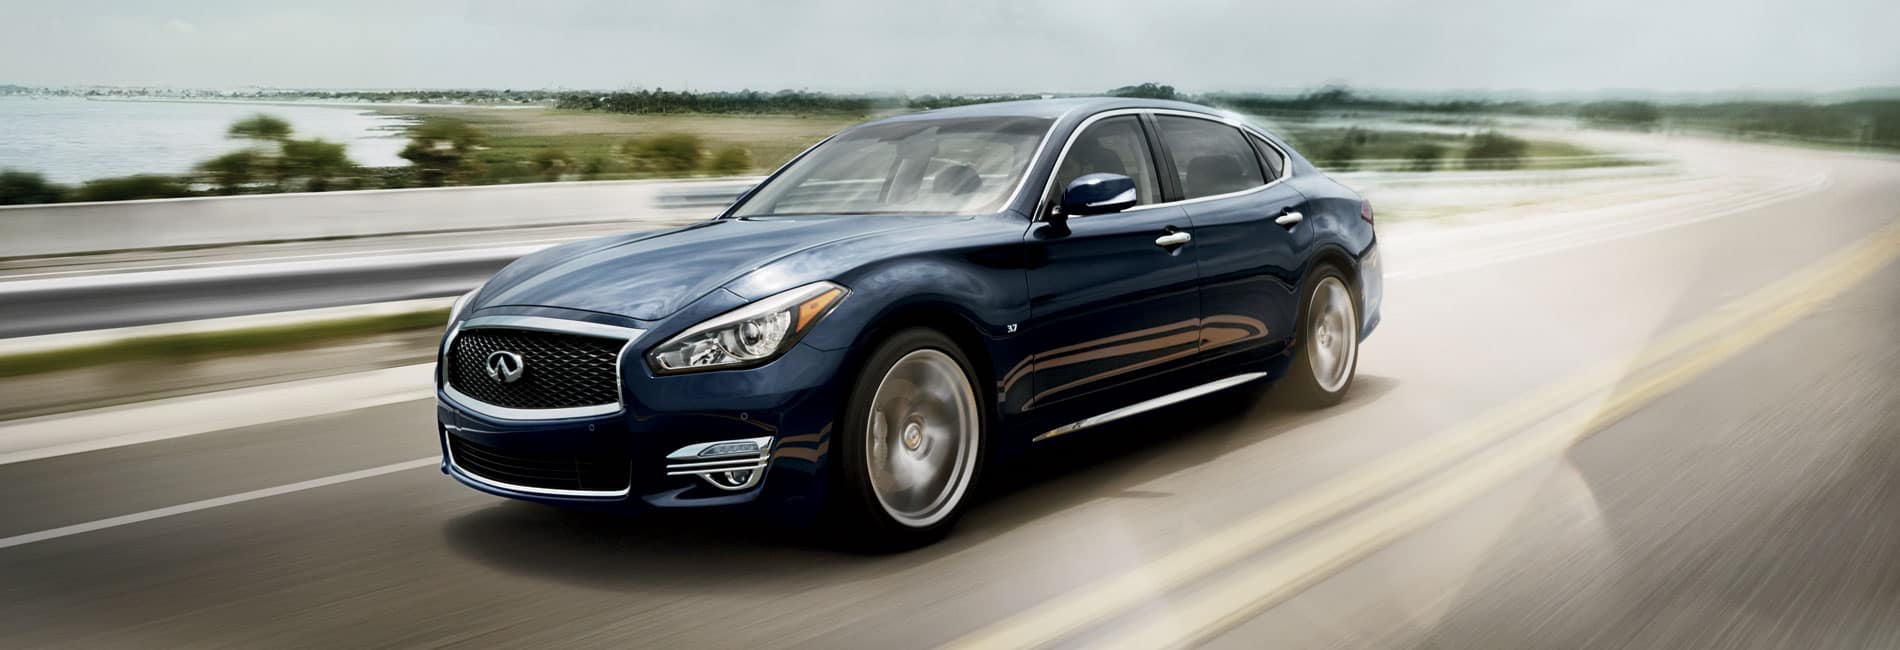 2019 INFINITI Q70L for Sale in Niles, IL